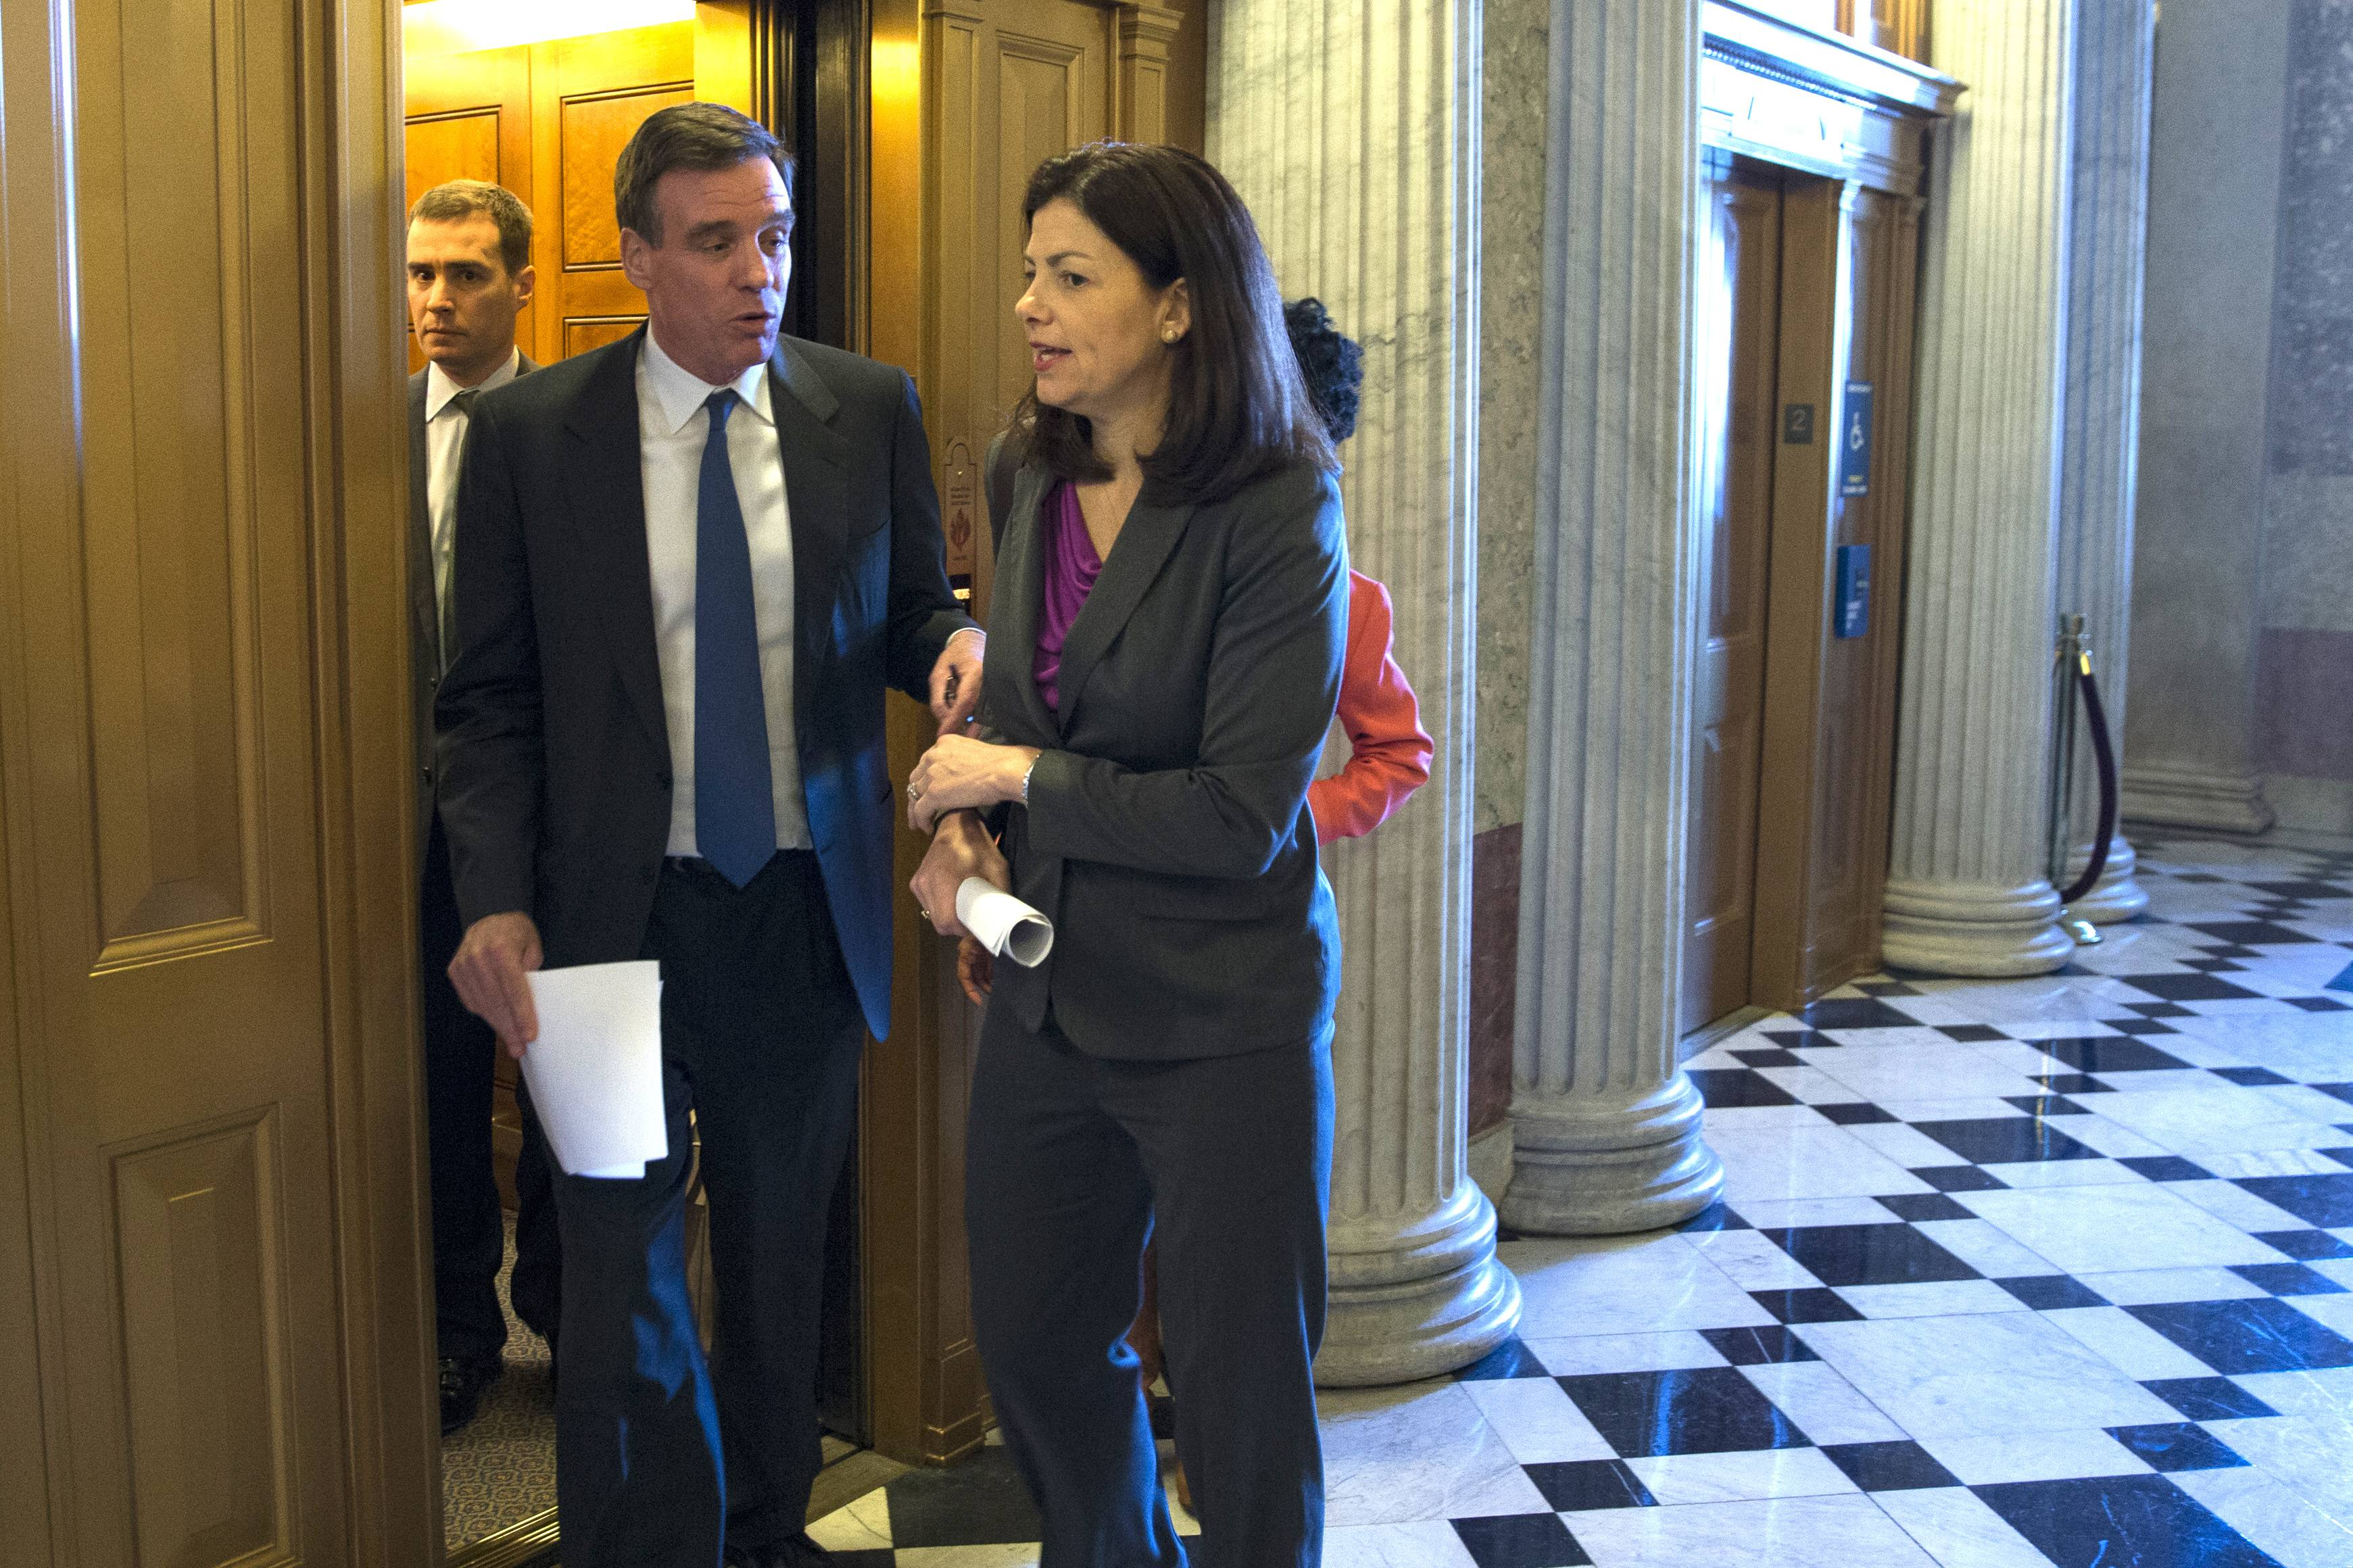 Sen. Kelly Ayotte, a New Hampshire Republican, right, and Sen. Mark Warner, a Virginia Democrat, arrive for a Senate vote on military sexual assault legislation on Capitol Hill Monday.